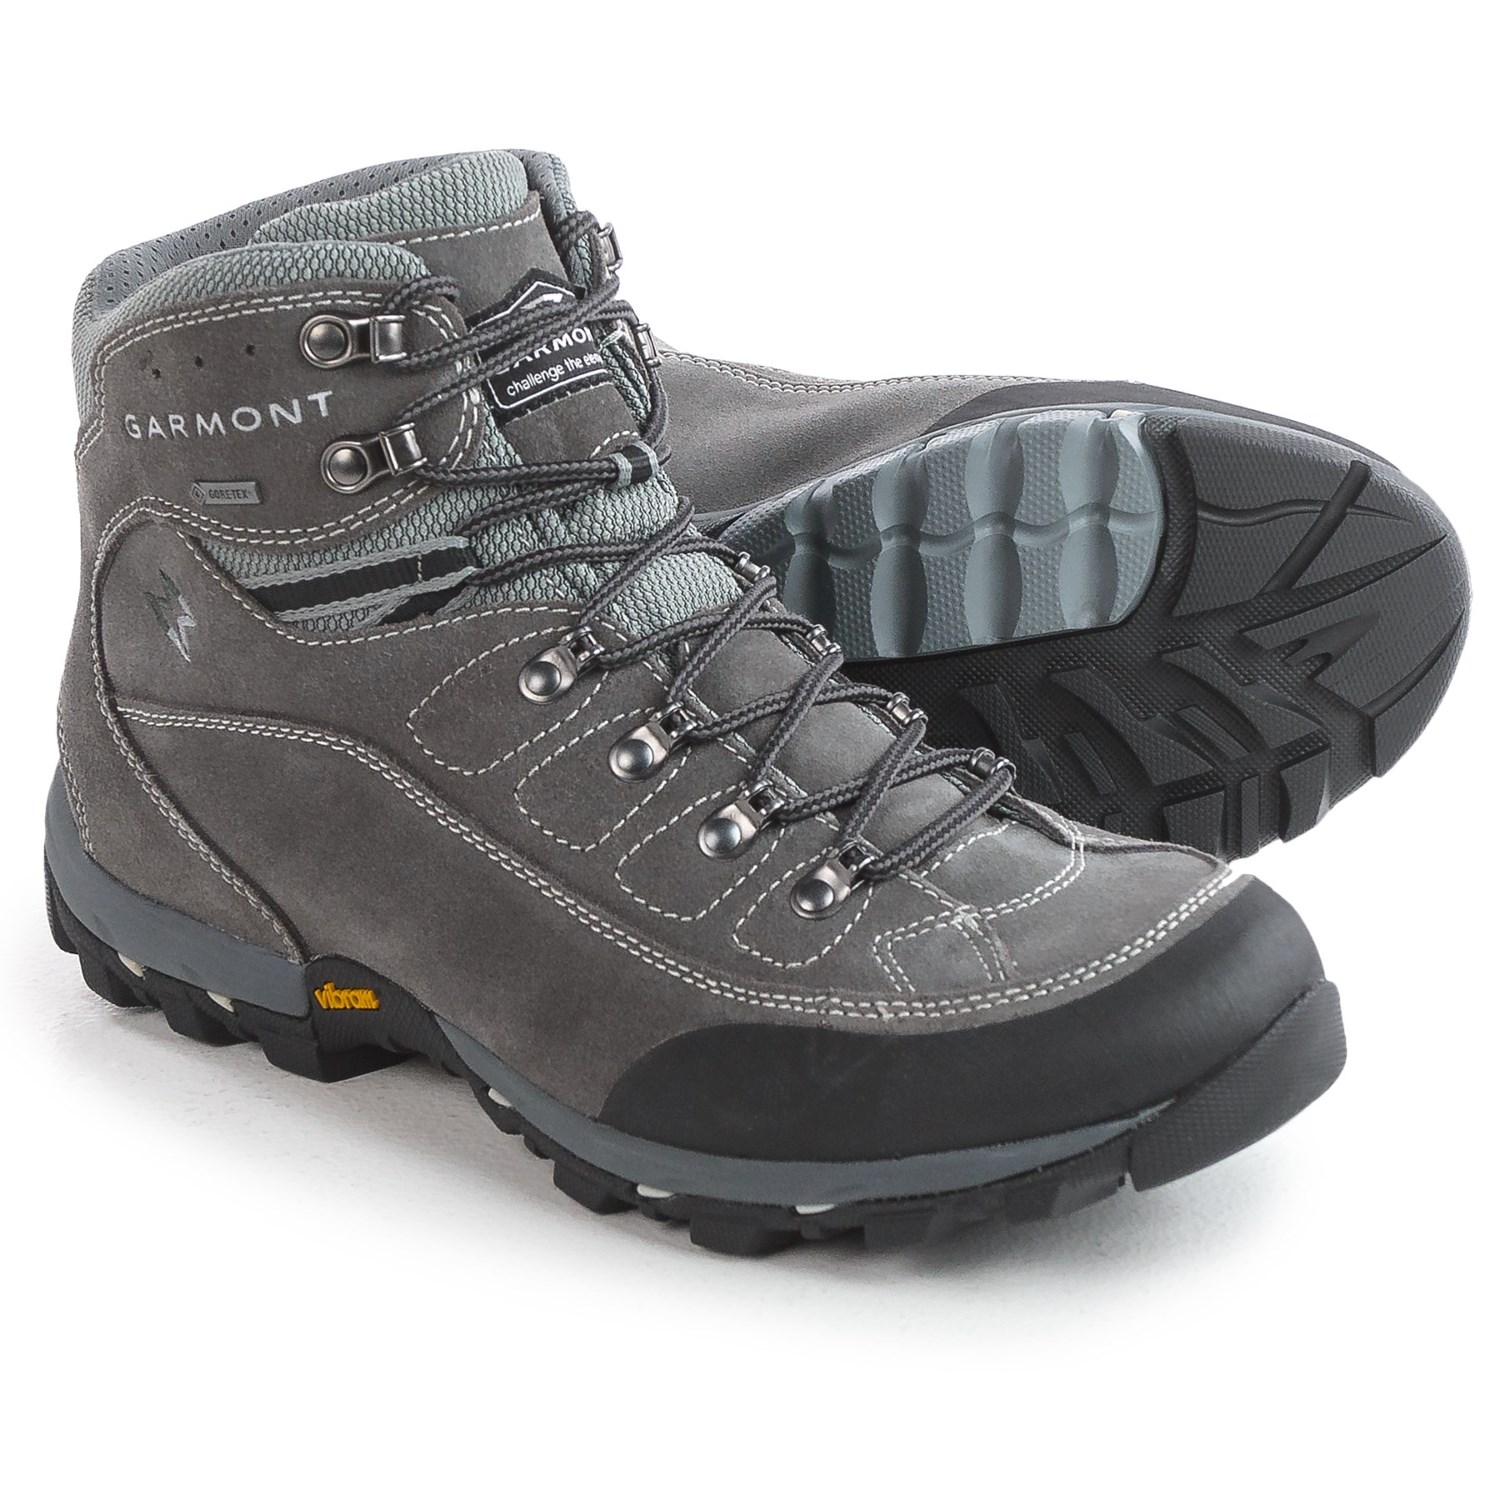 Garmont Trail Guide 2 0 Gore Tex 174 Hiking Boots For Men